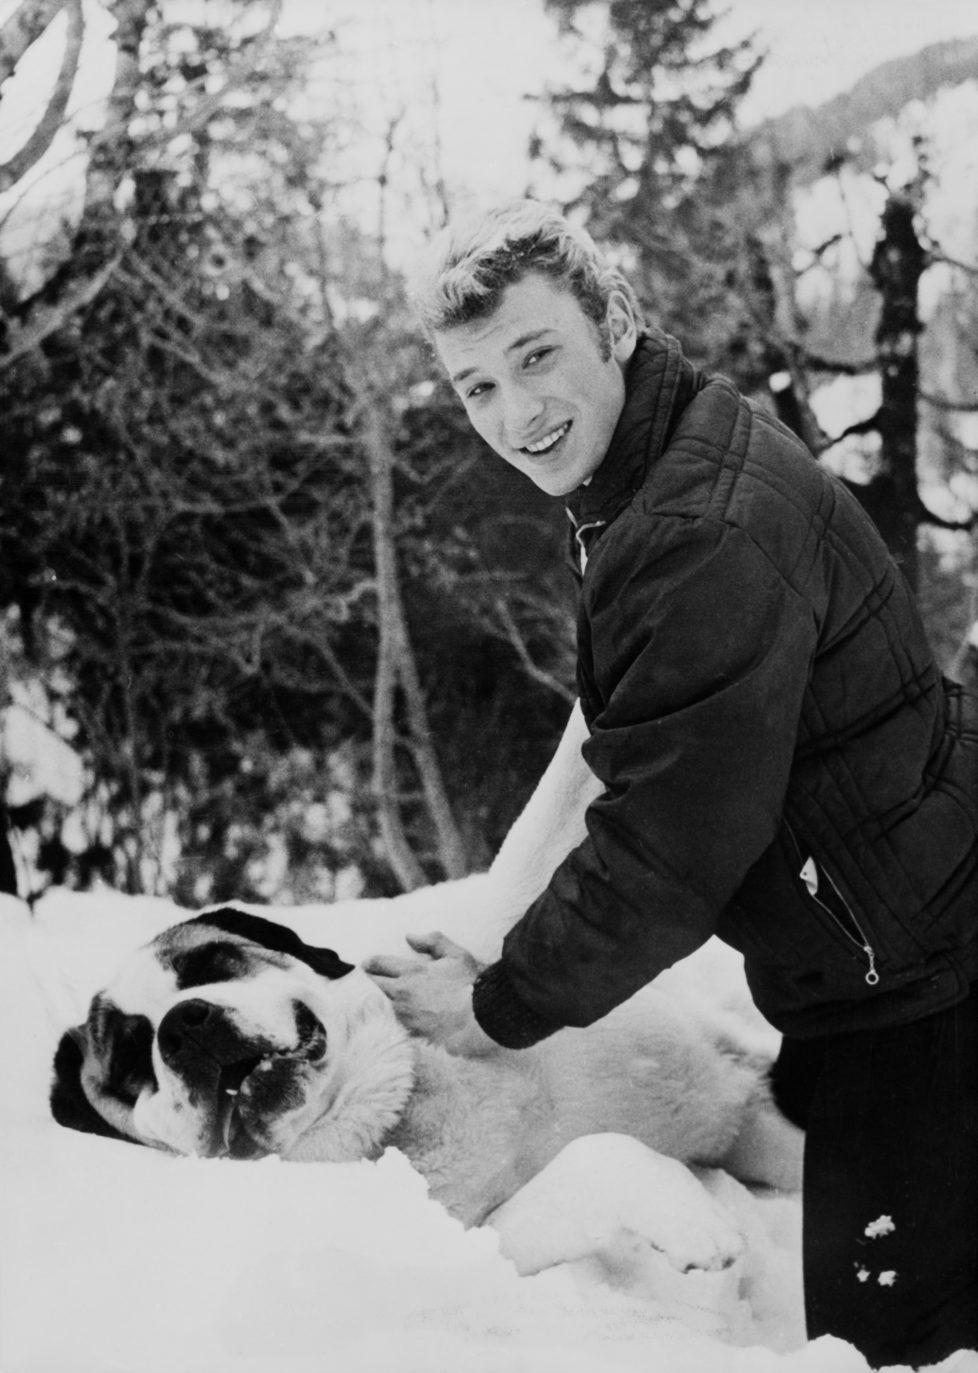 GSTAAD, SWITZERLAND - JANUARY 07: Johnny Hallyday playing with a Saint Bernard dog in Gstaad, Switzerland, on January 7, 1962. (Photo by Keystone-FranceGamma-Rapho via Getty Images) *** Local Caption *** Johnny Hallyday